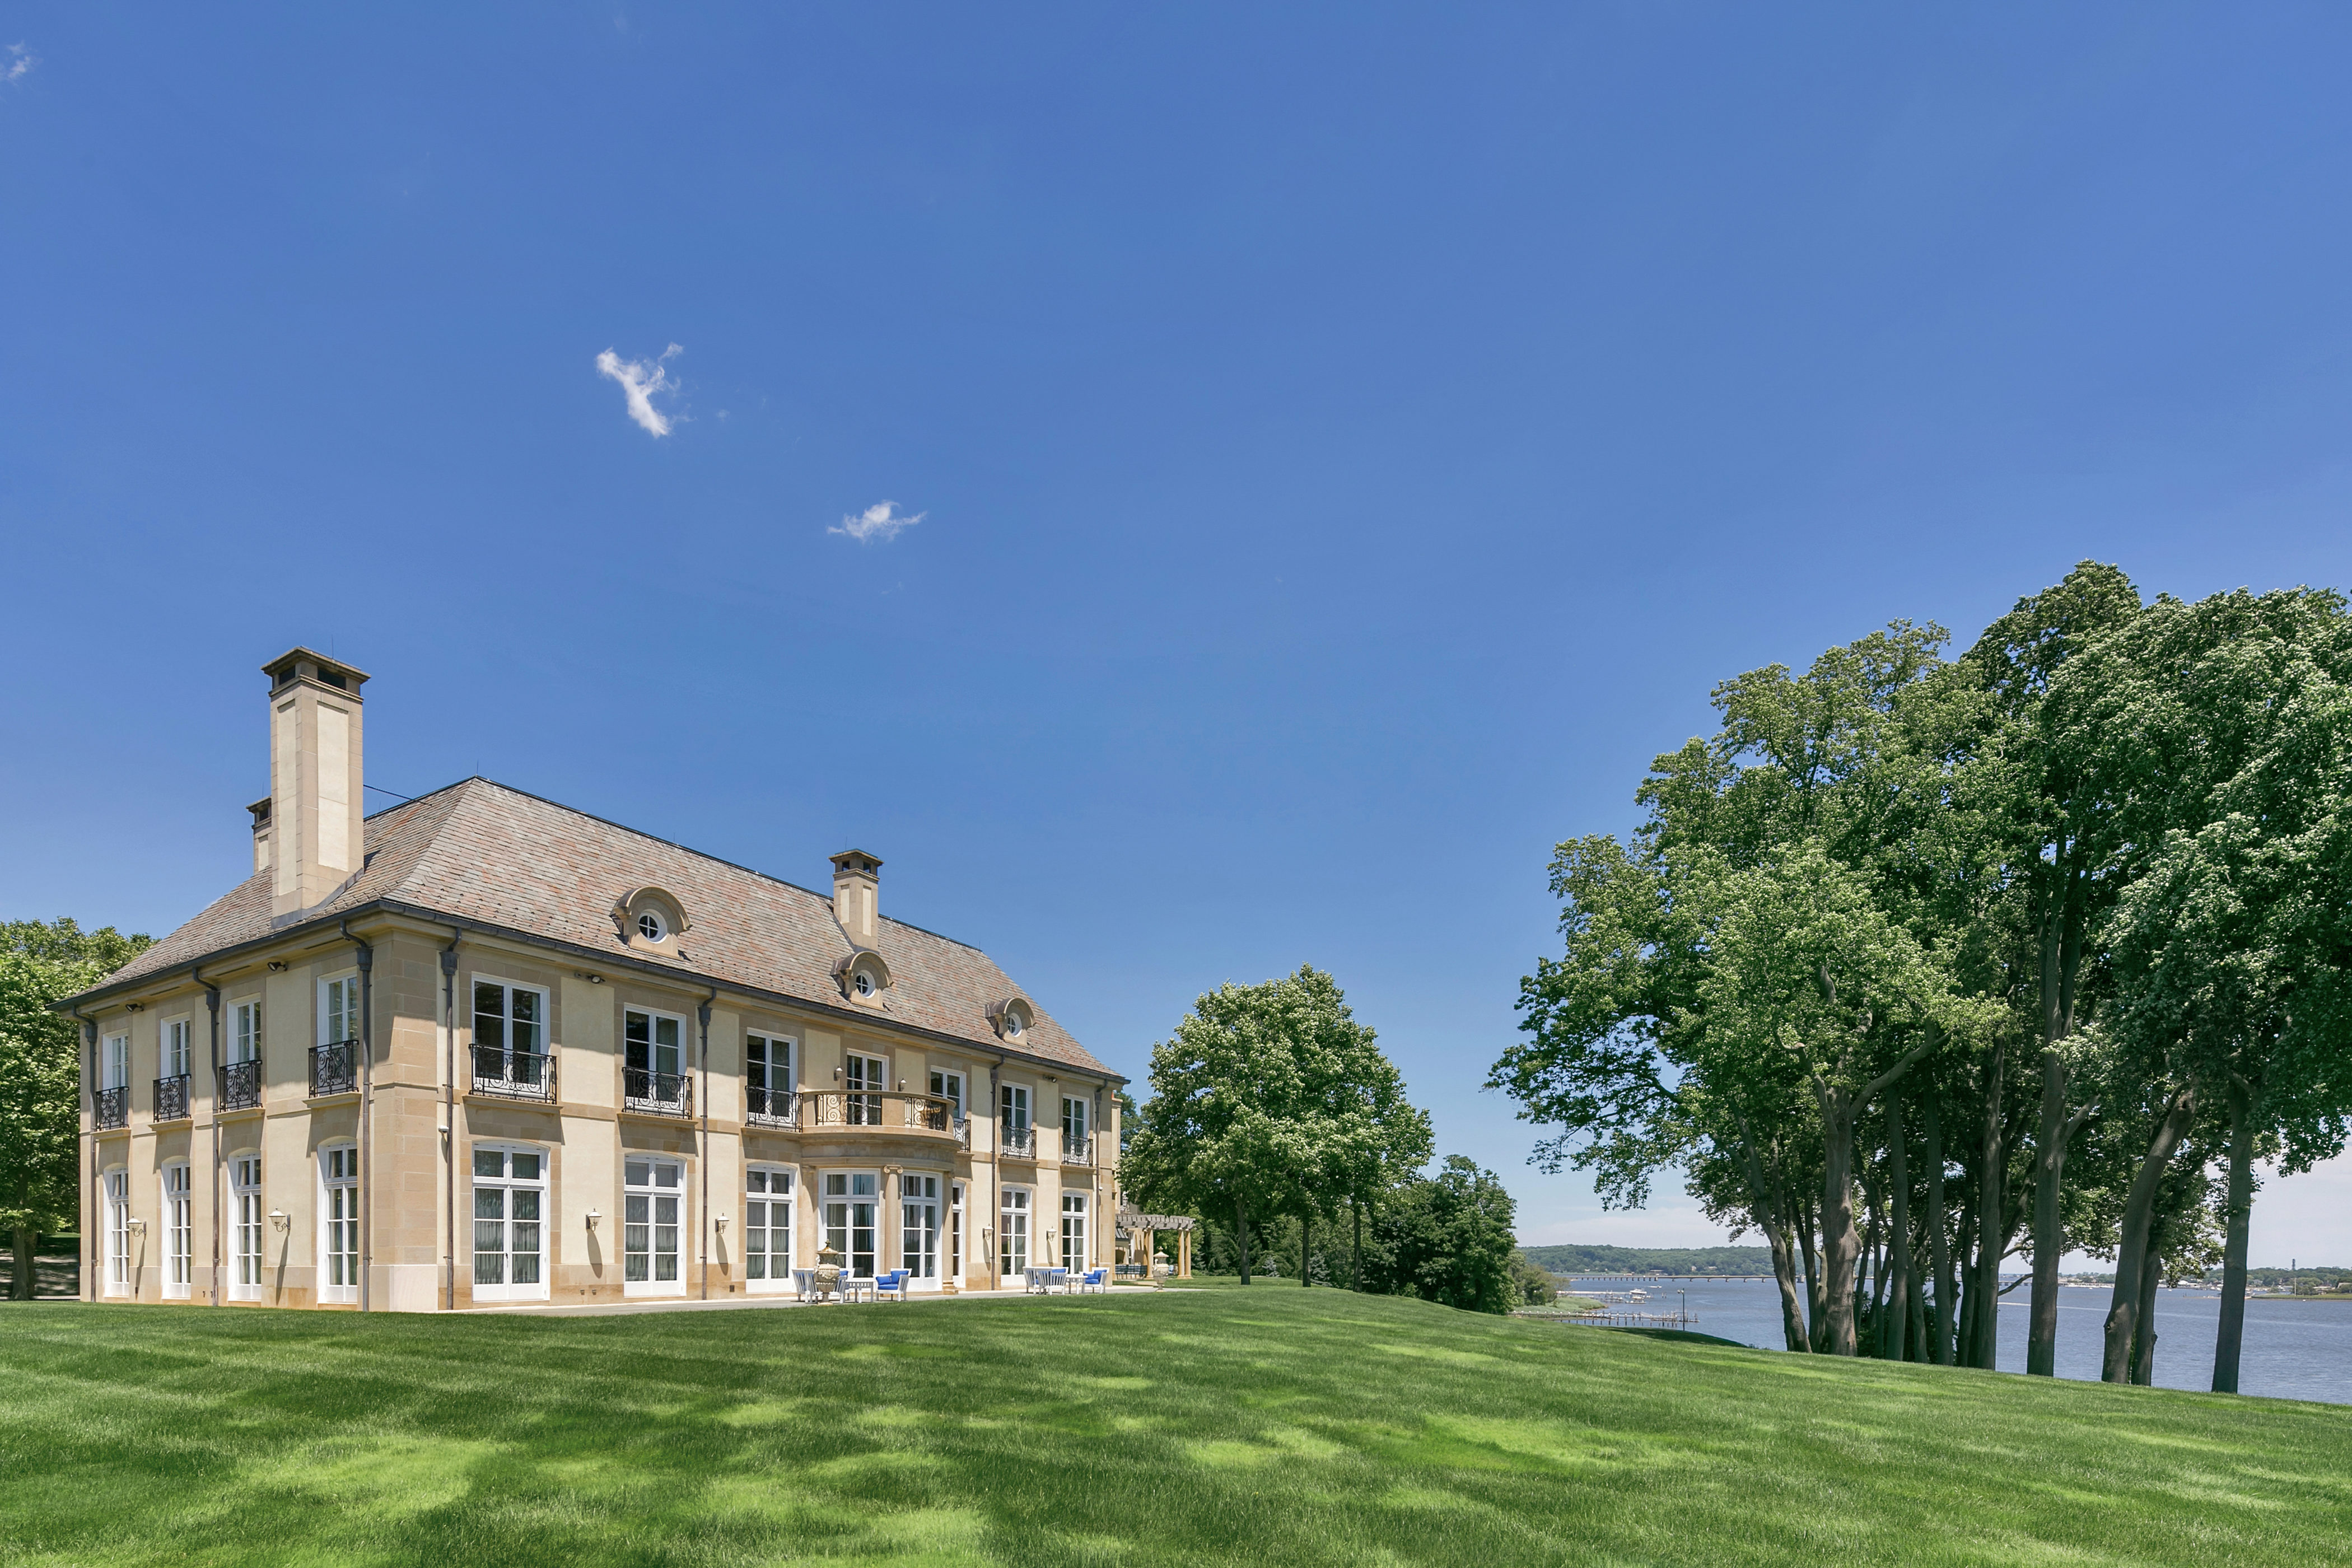 High Point Estate On The Navesink River A Luxury Estate For Sale In Middletown New Jersey Christie S International Real Estate